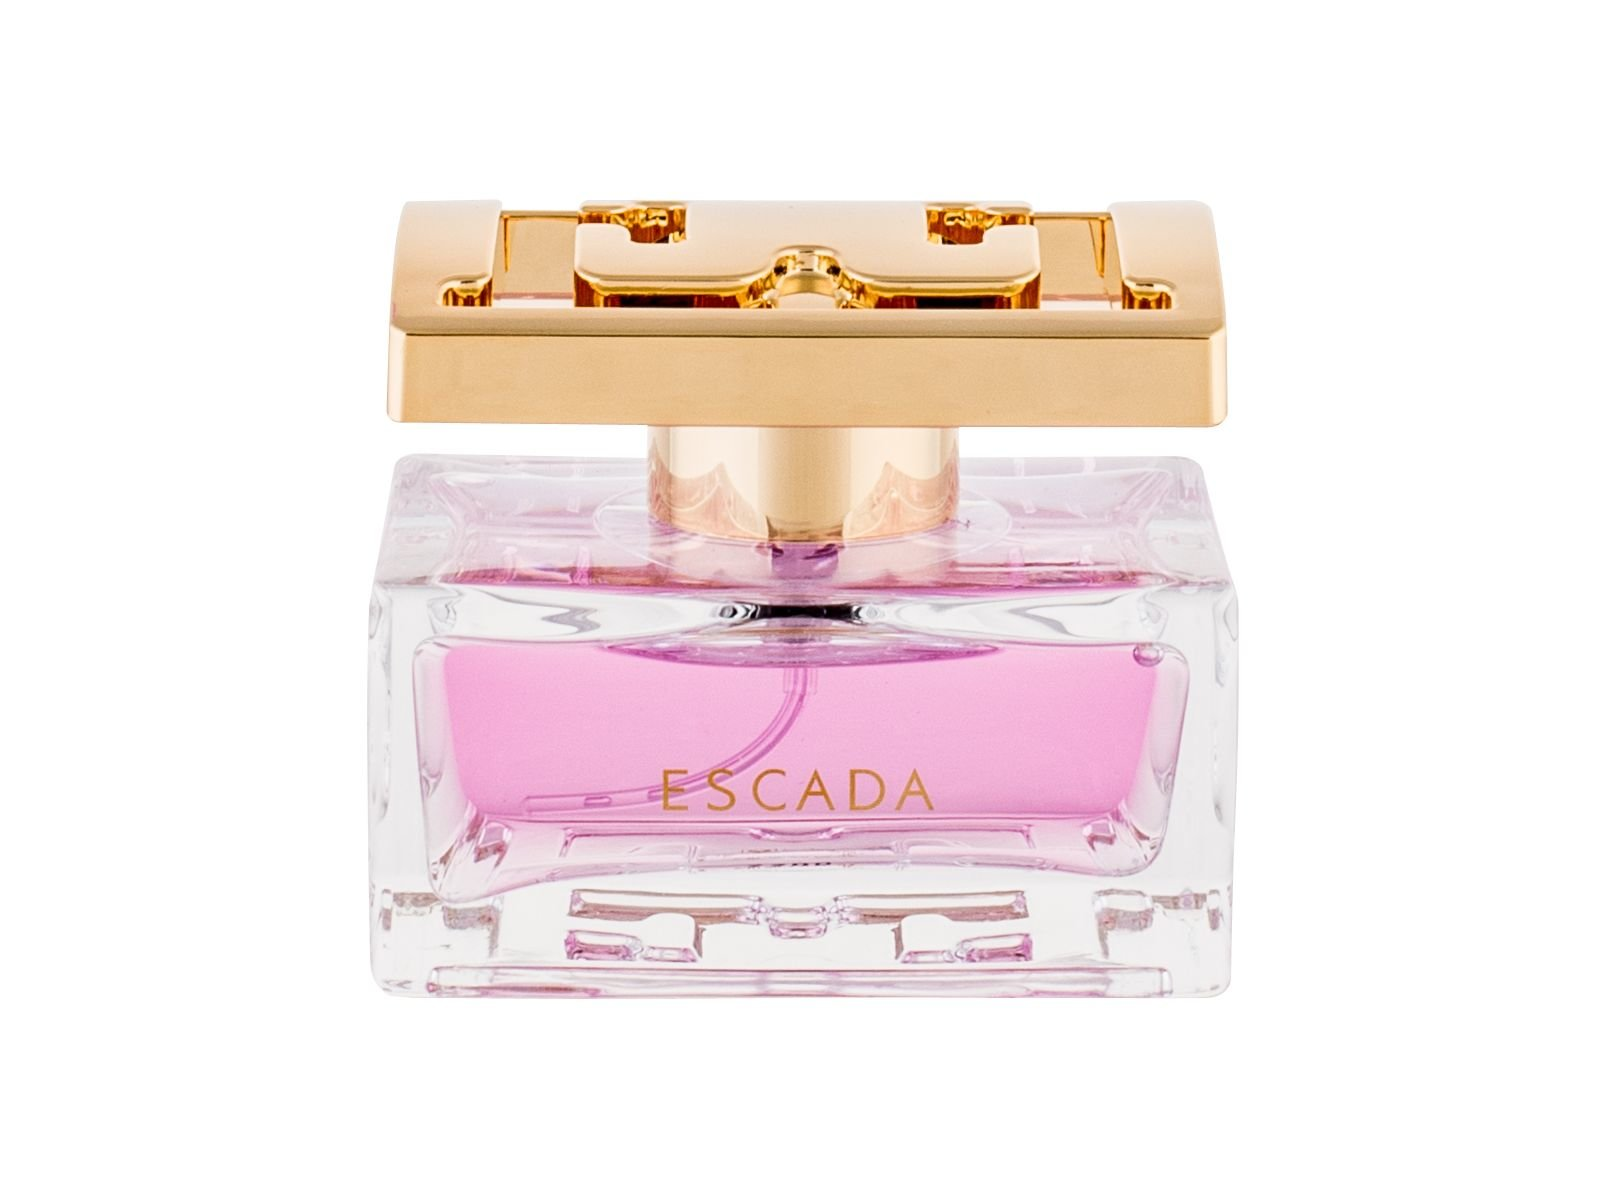 ESCADA Especially Escada Eau de Parfum 30ml